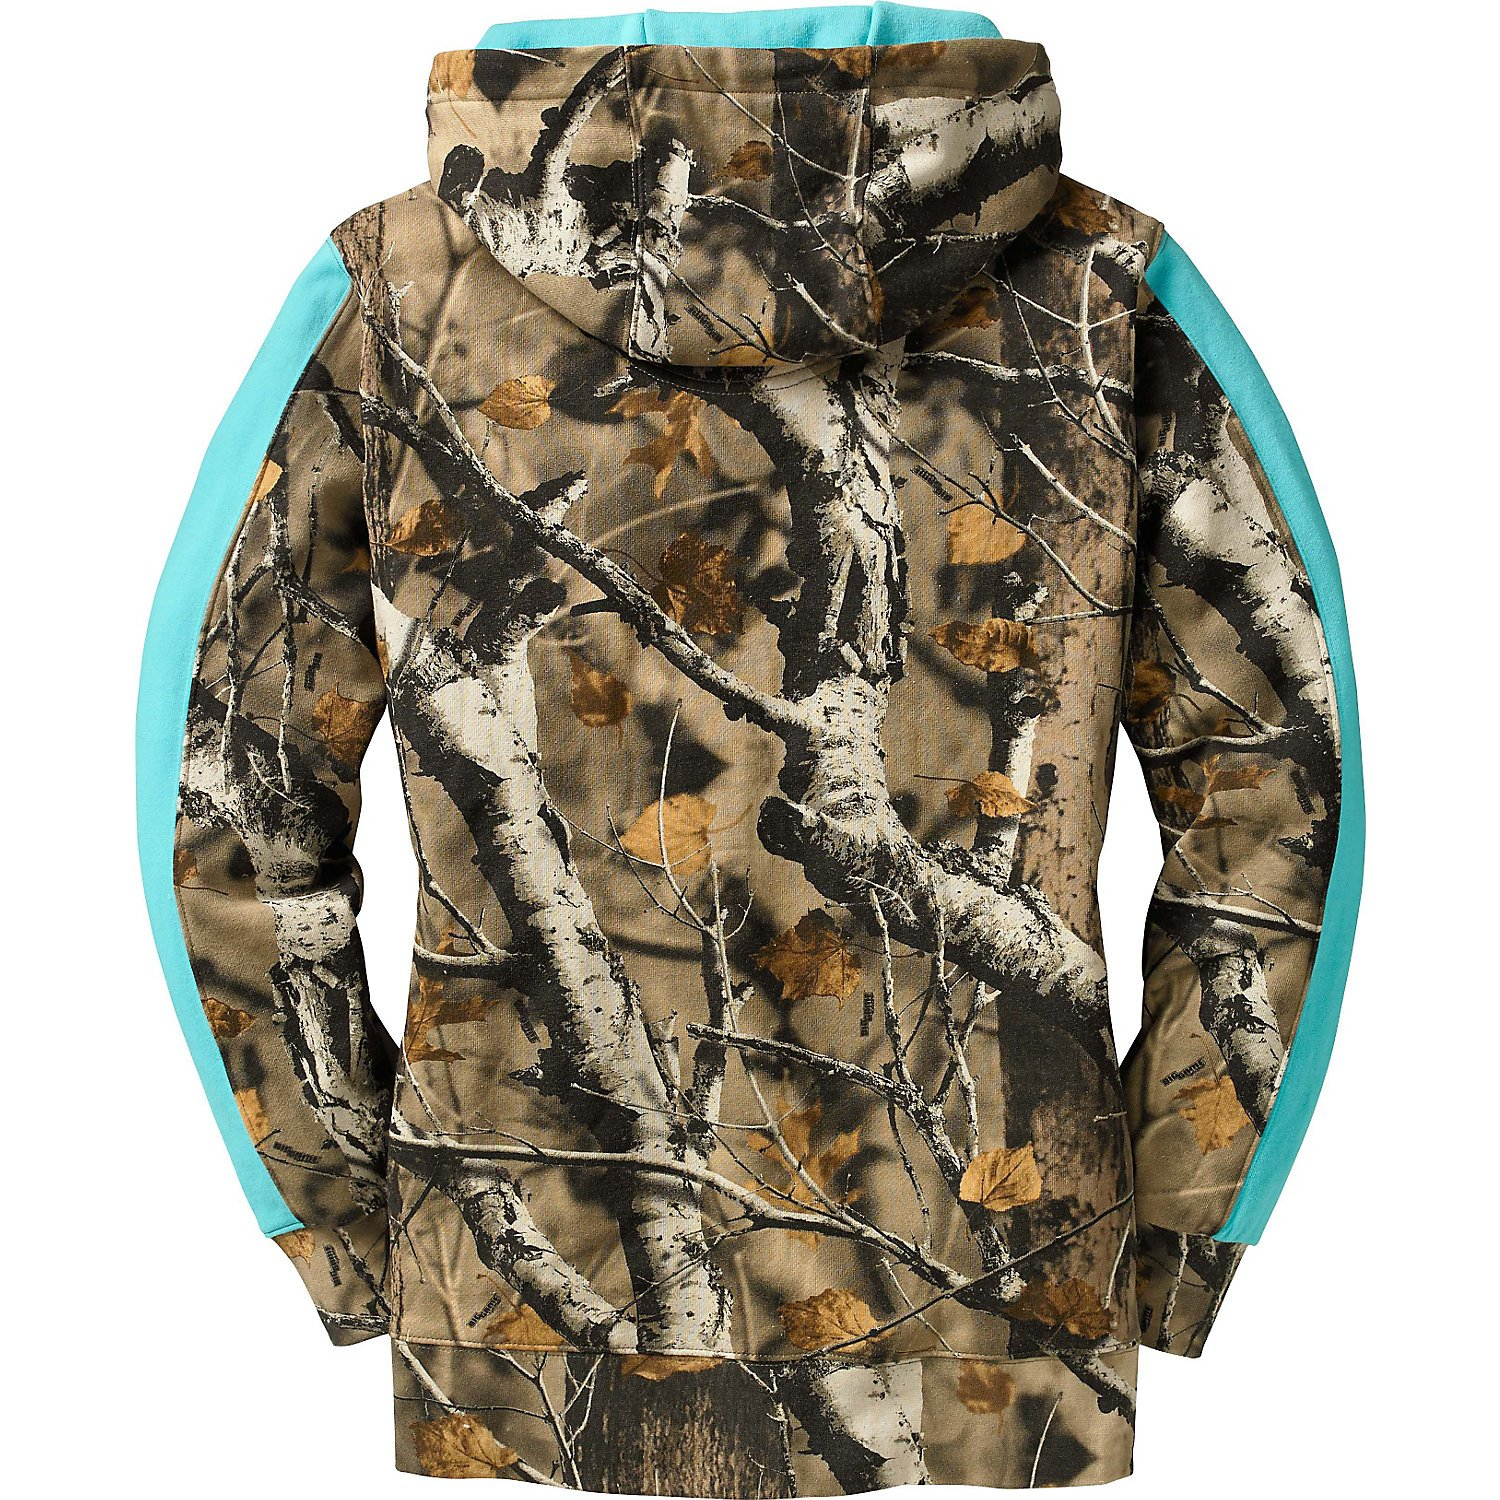 Legendary Whitetails Ladies Outfitter Hoodie Big Game Field Camo Small by Legendary Whitetails (Image #2)